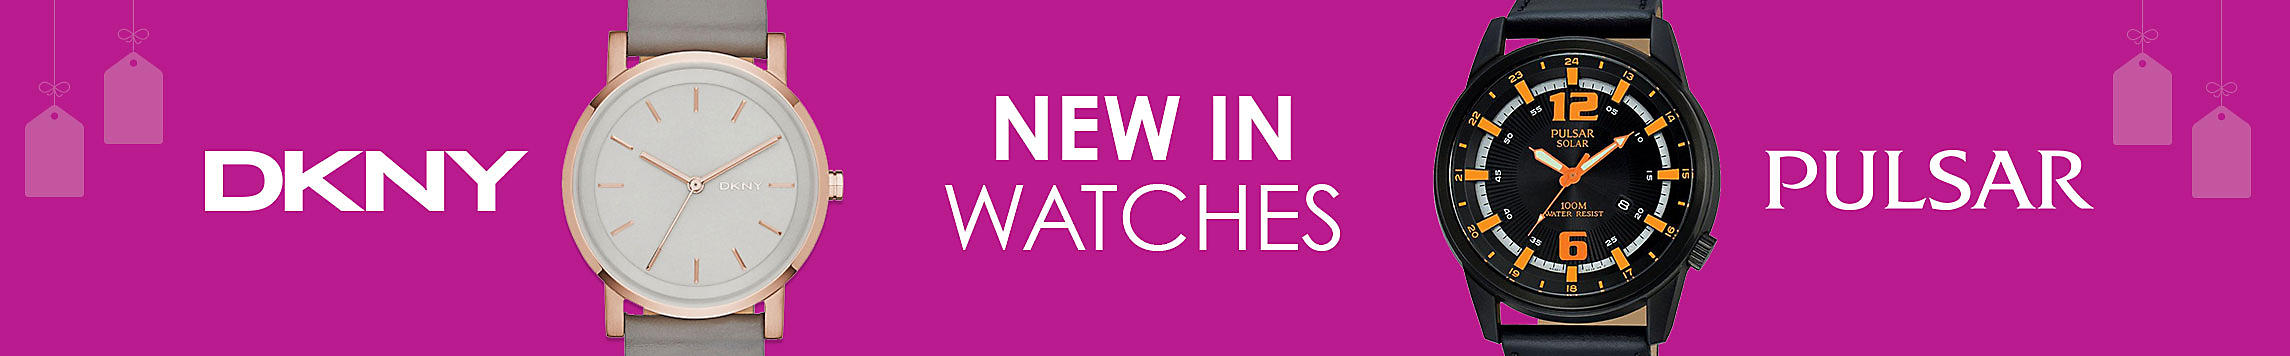 New in Watches